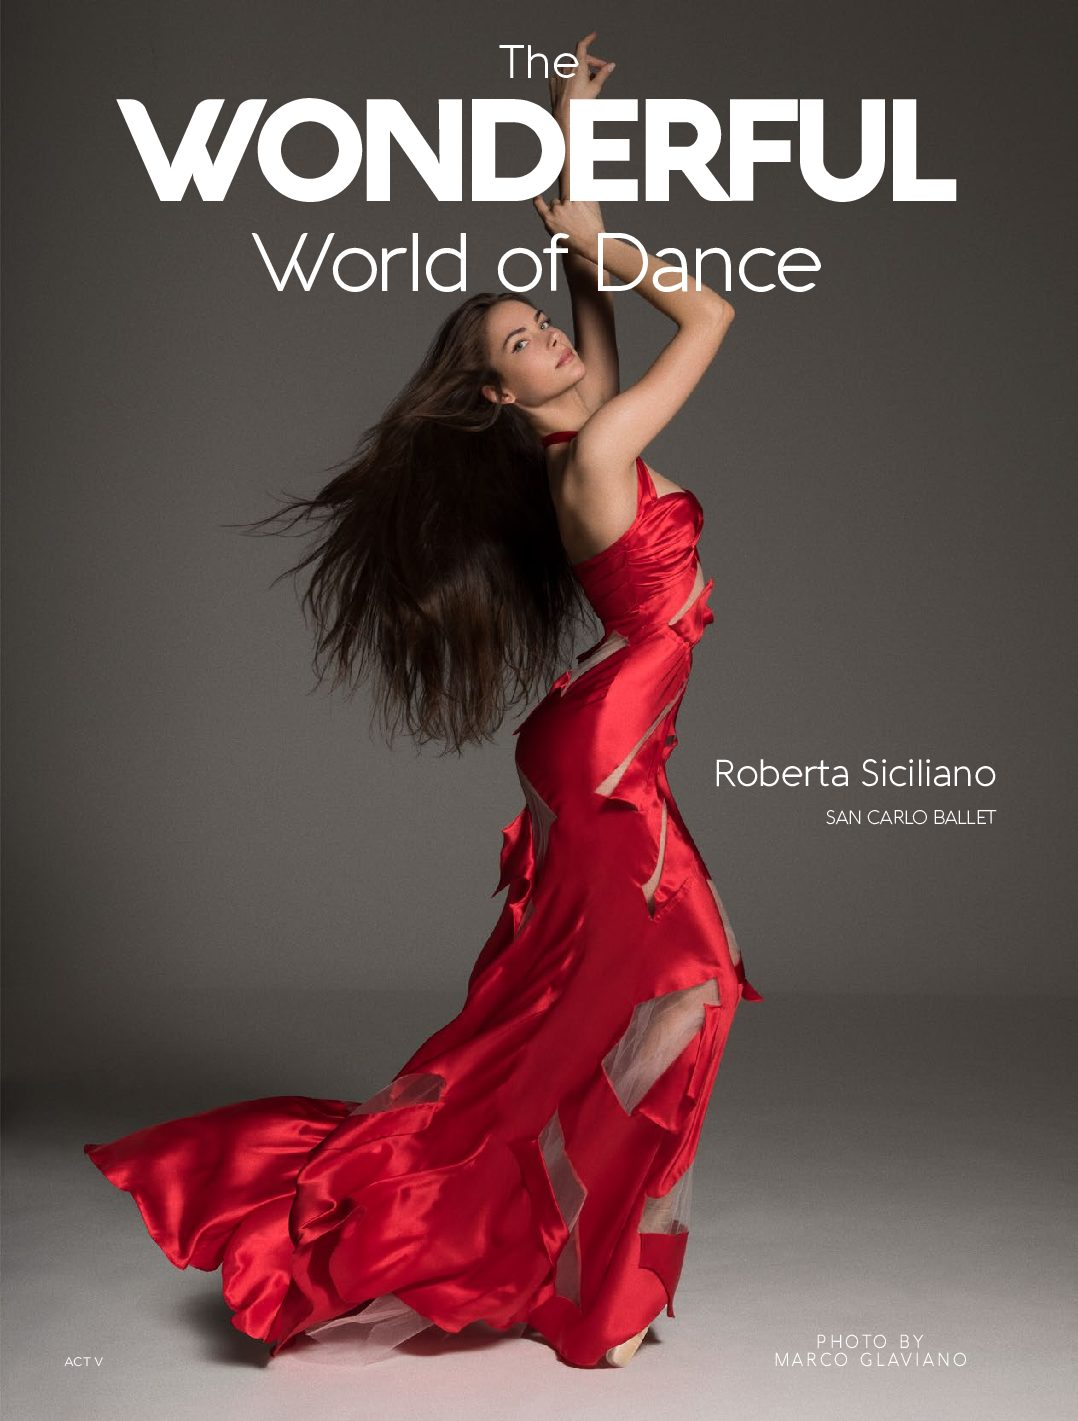 The Wonderful World of Dance Magazine Act 5 Cover Star Roberta Siciliano